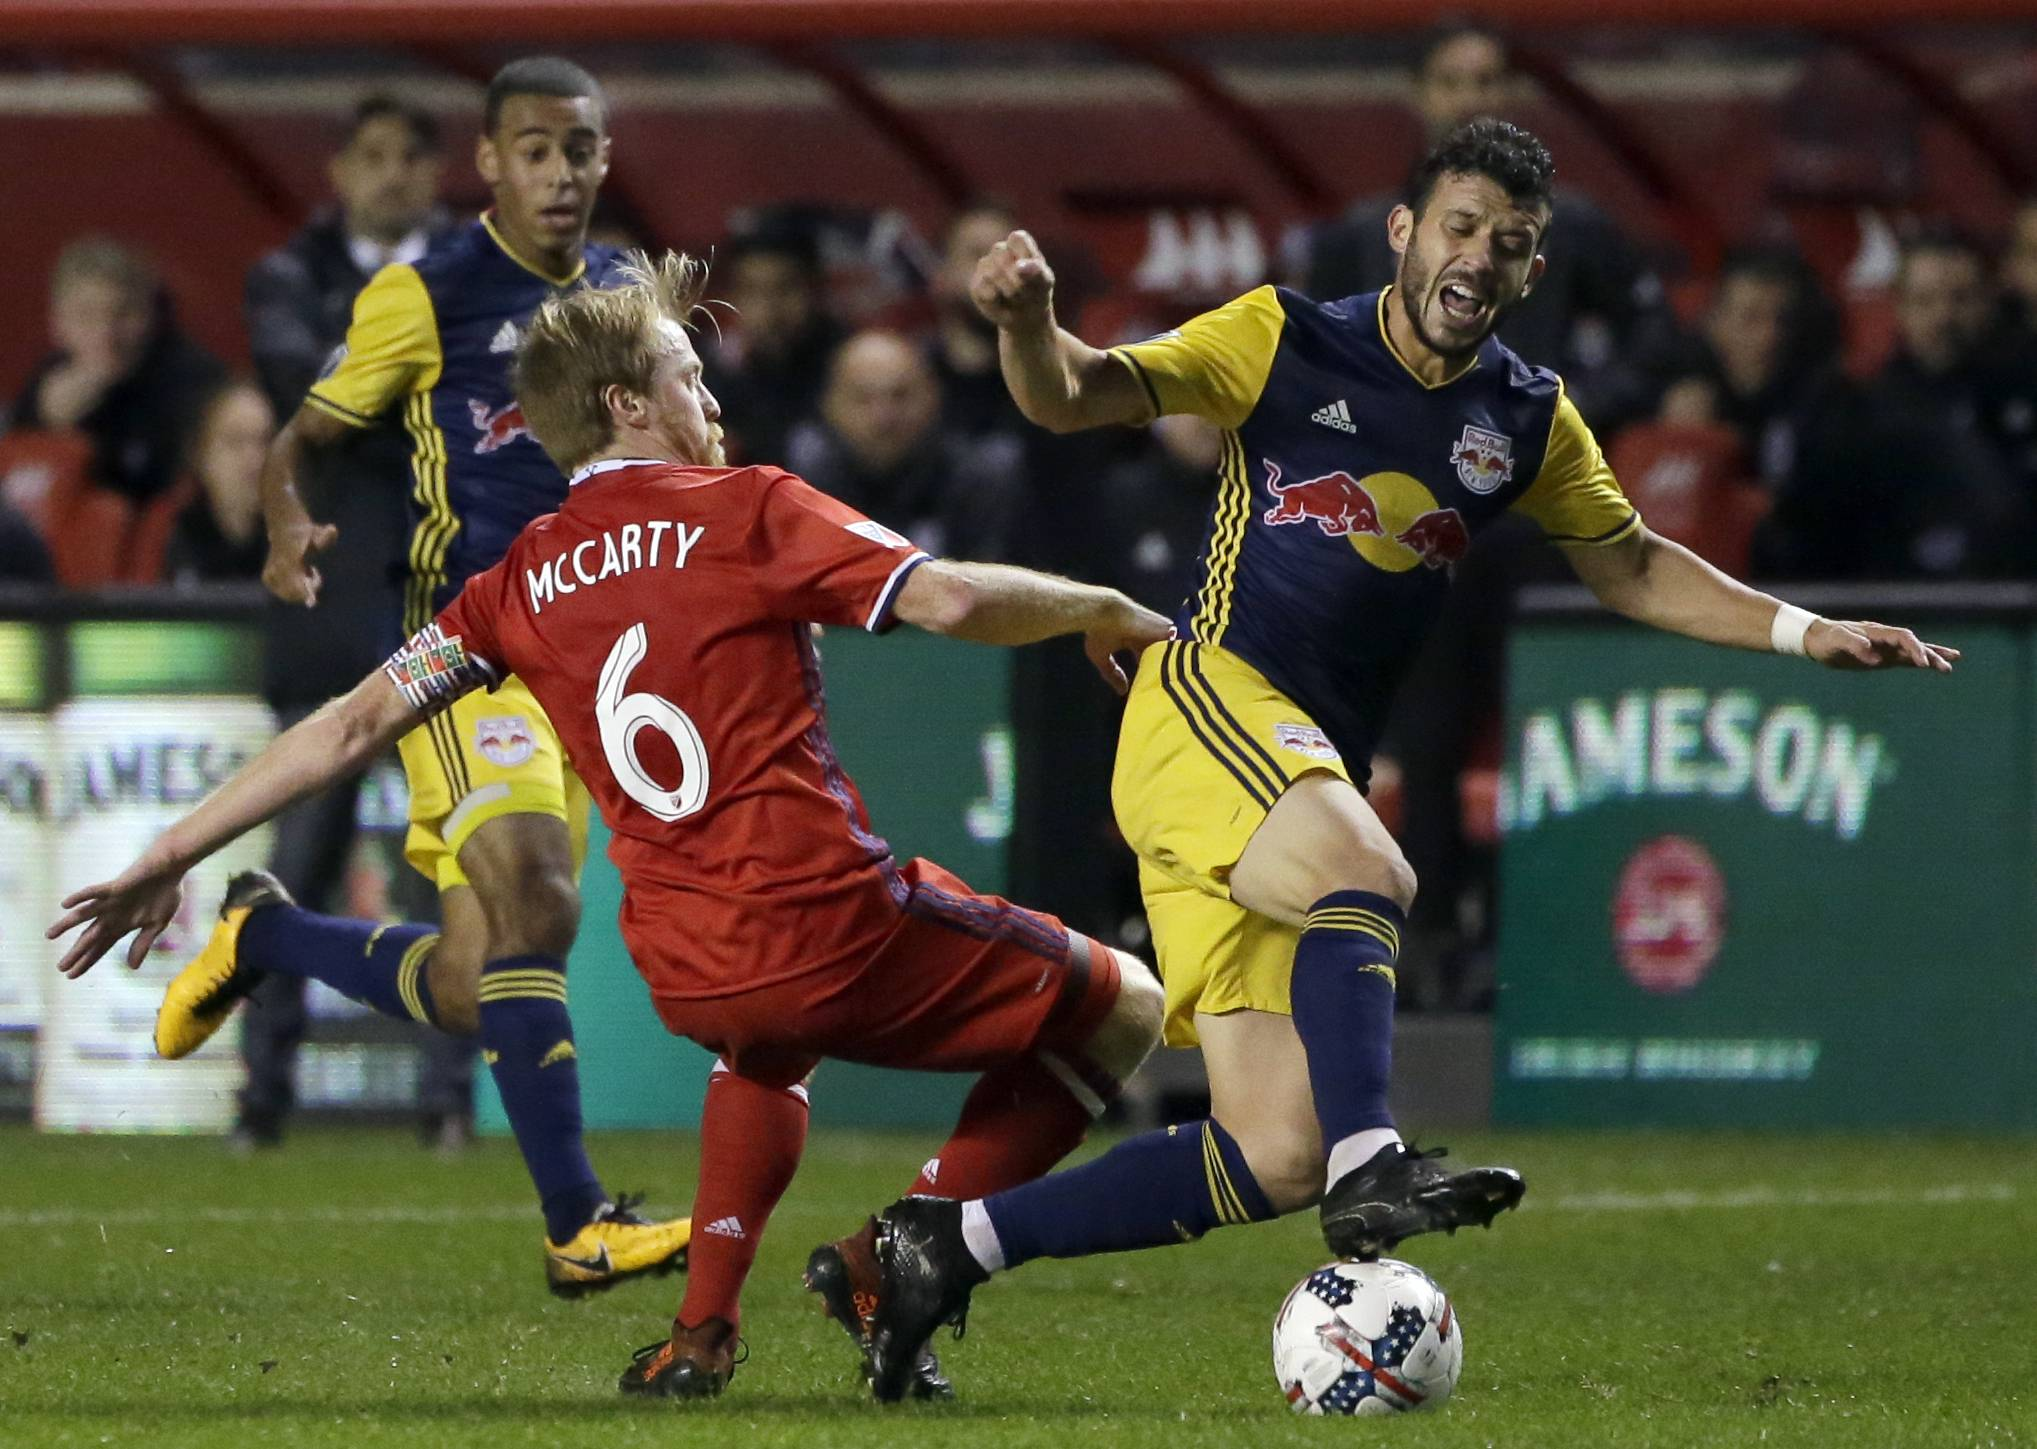 Chicago Fire midfielder Dax McCarty, left, is expected to be out 3-4 weeks with a hamstring injury, team officials said Thursday,